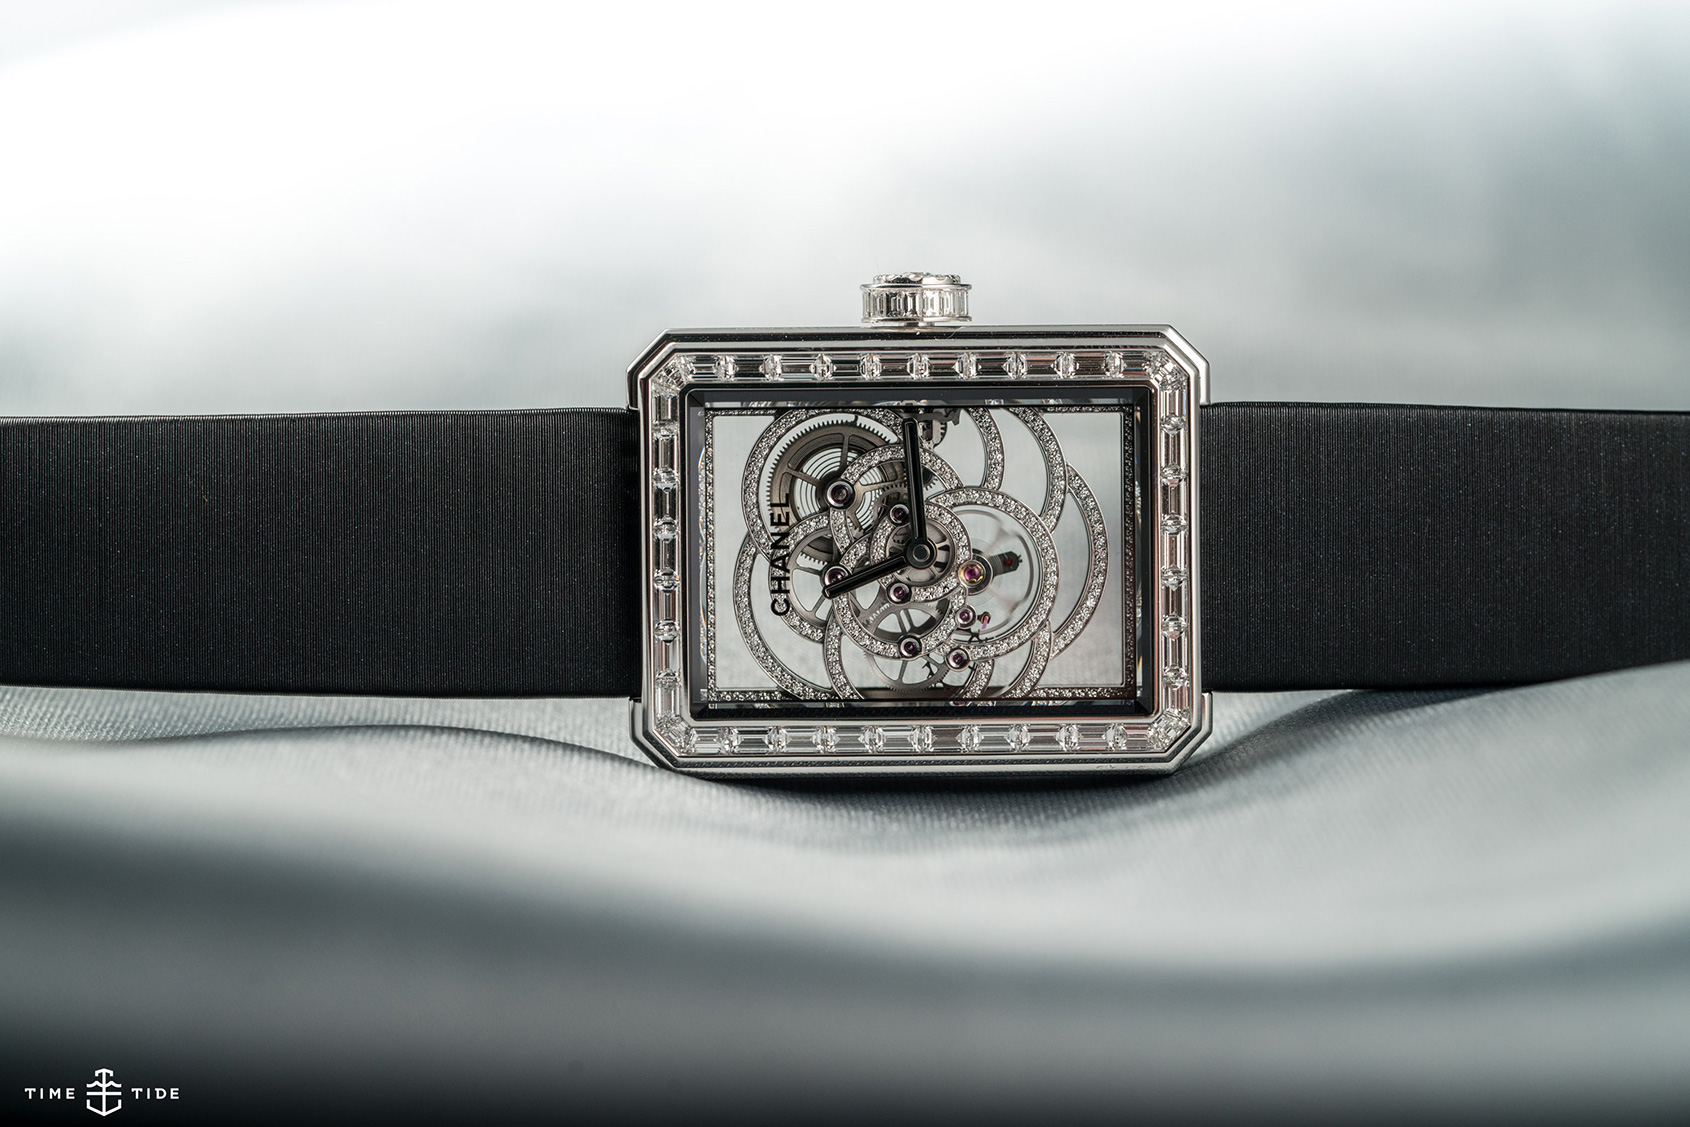 A brief history of time – as seen by Chanel